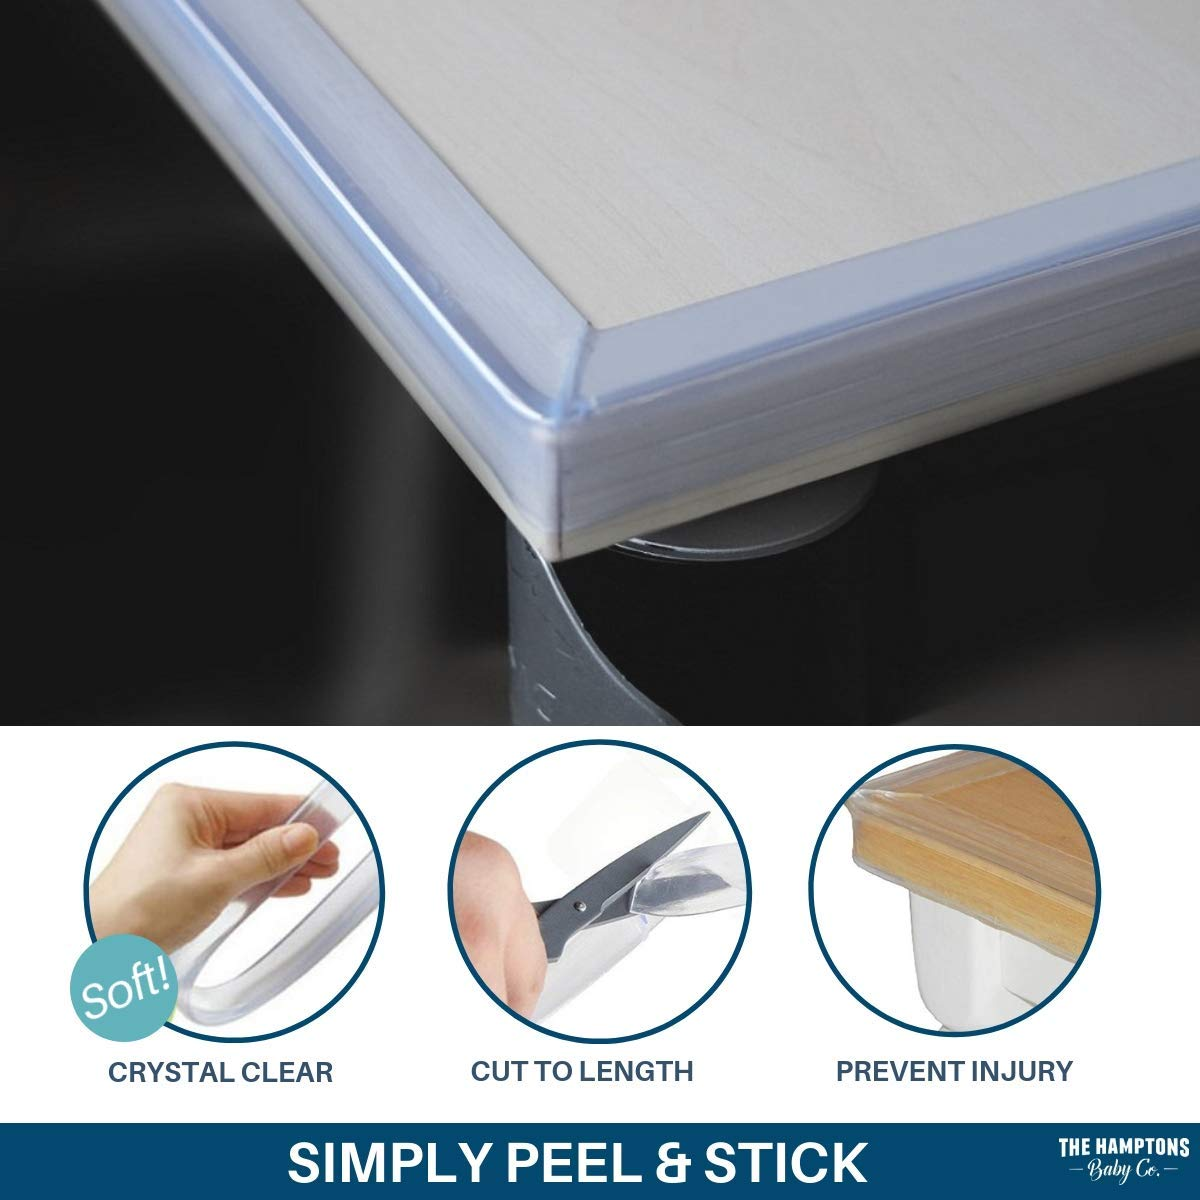 Clear Edge Protectors by The Hamptons Baby - 9-1ft Pieces with Premium Gel Adhesive - Guard Against Injuries on Sharp Edges in Your House, Use on Coffee & Dining Tables, Dressers, Desks and Much More by The Hamptons Baby (Image #10)